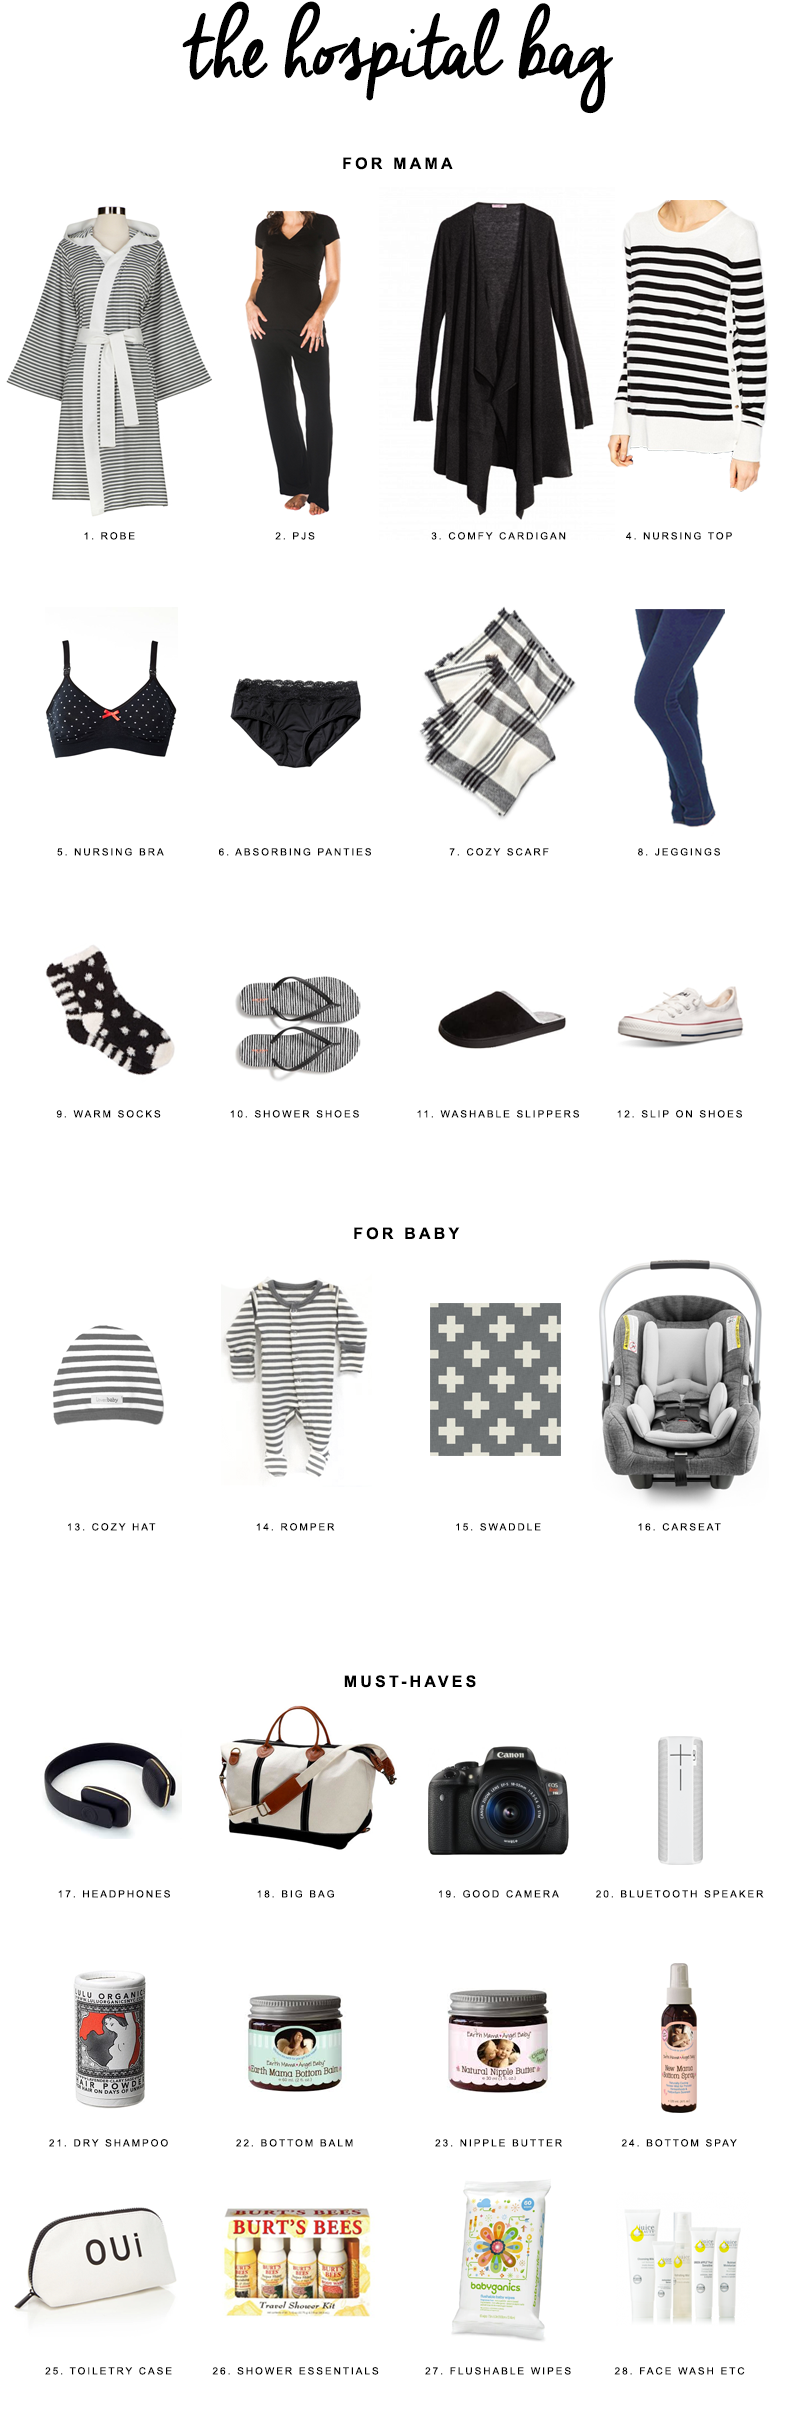 Hospital Bag Packing List | Everything you need and nothing you don't when packing your bag for the hospital for giving birth.